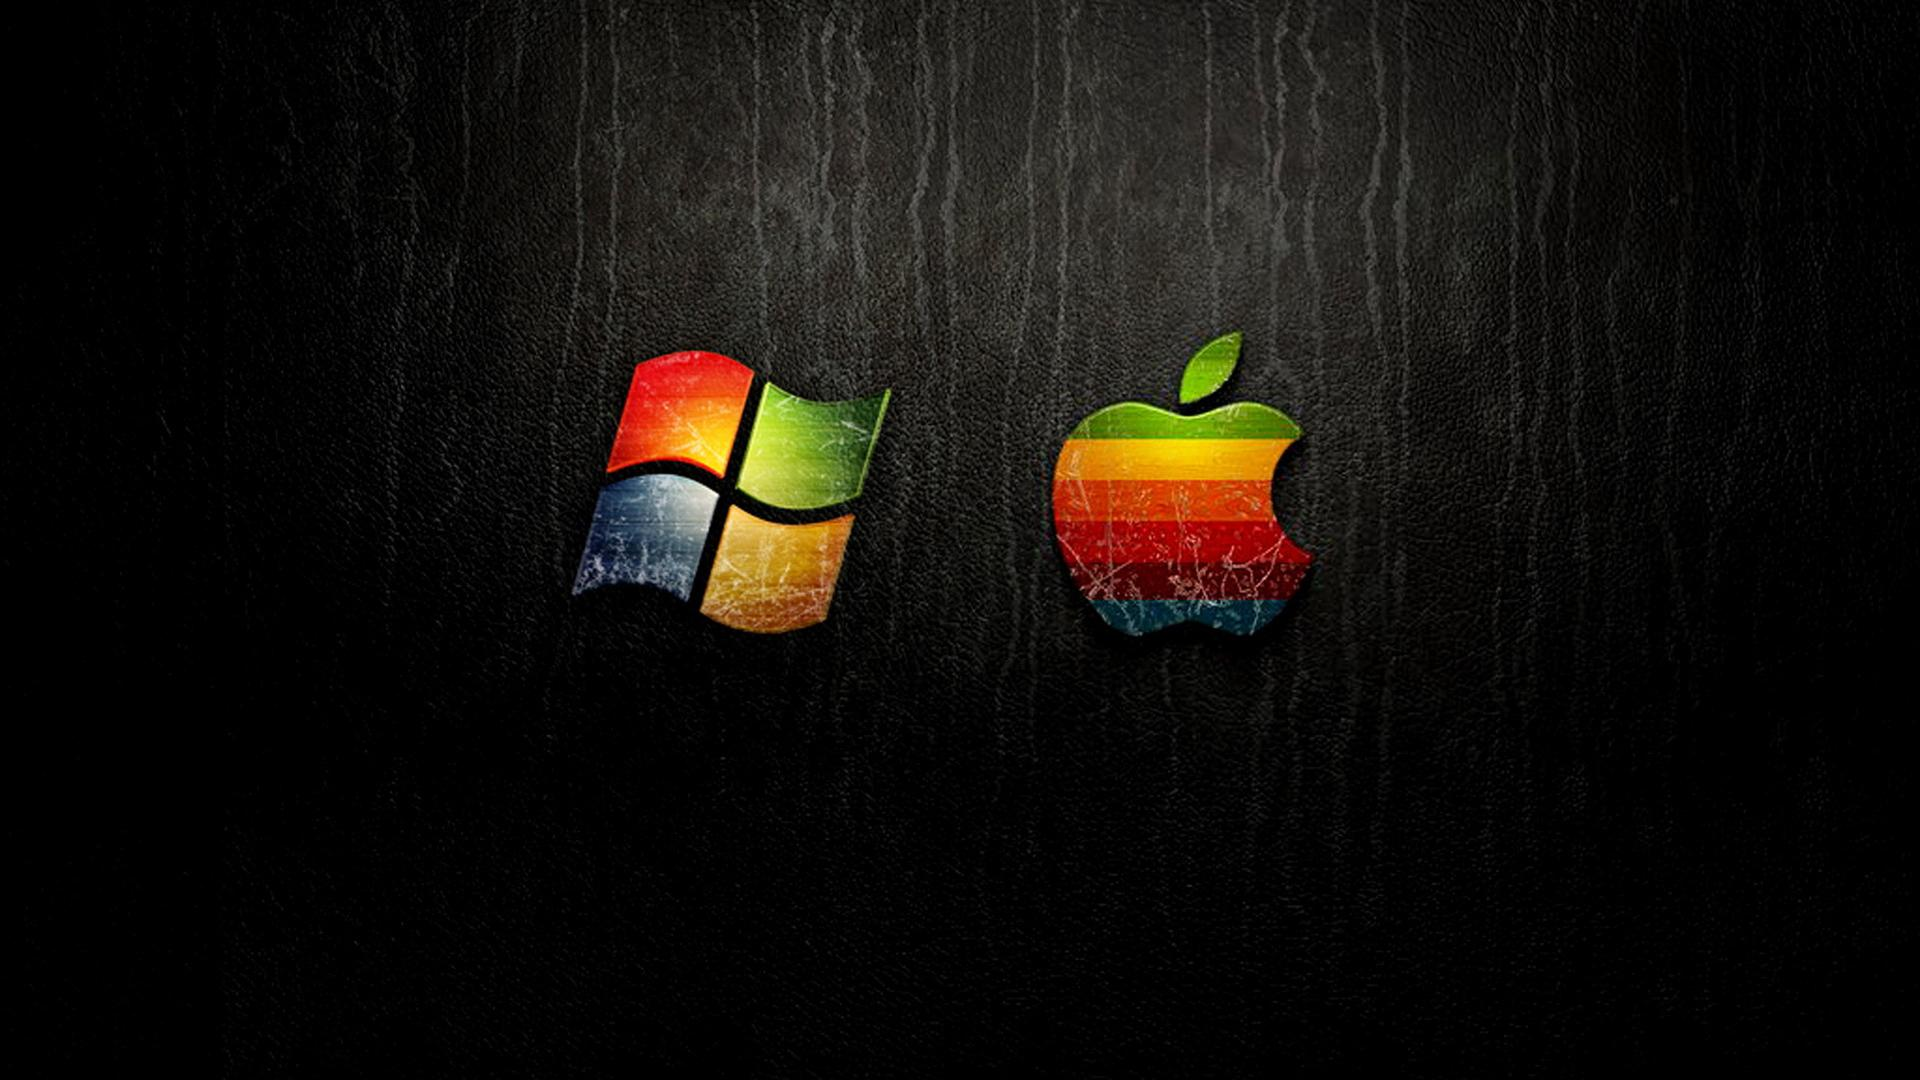 apple wallpaper hd download - photo #41